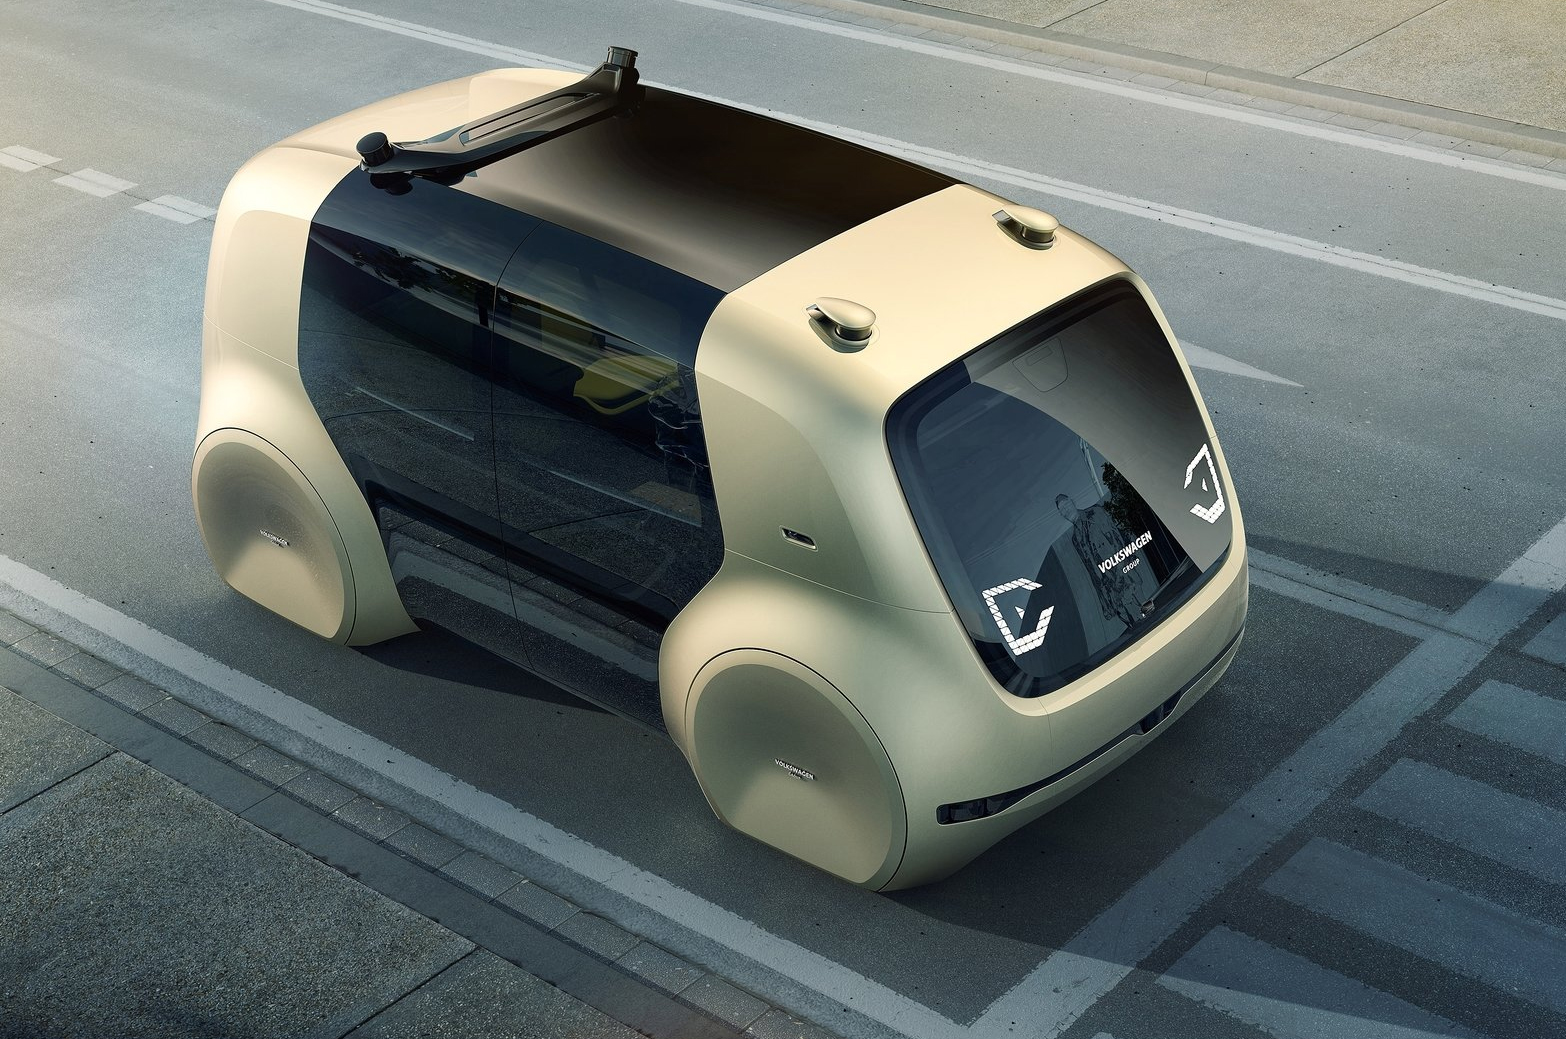 Sedric is Volkswagen's first self-driving concept vehicle